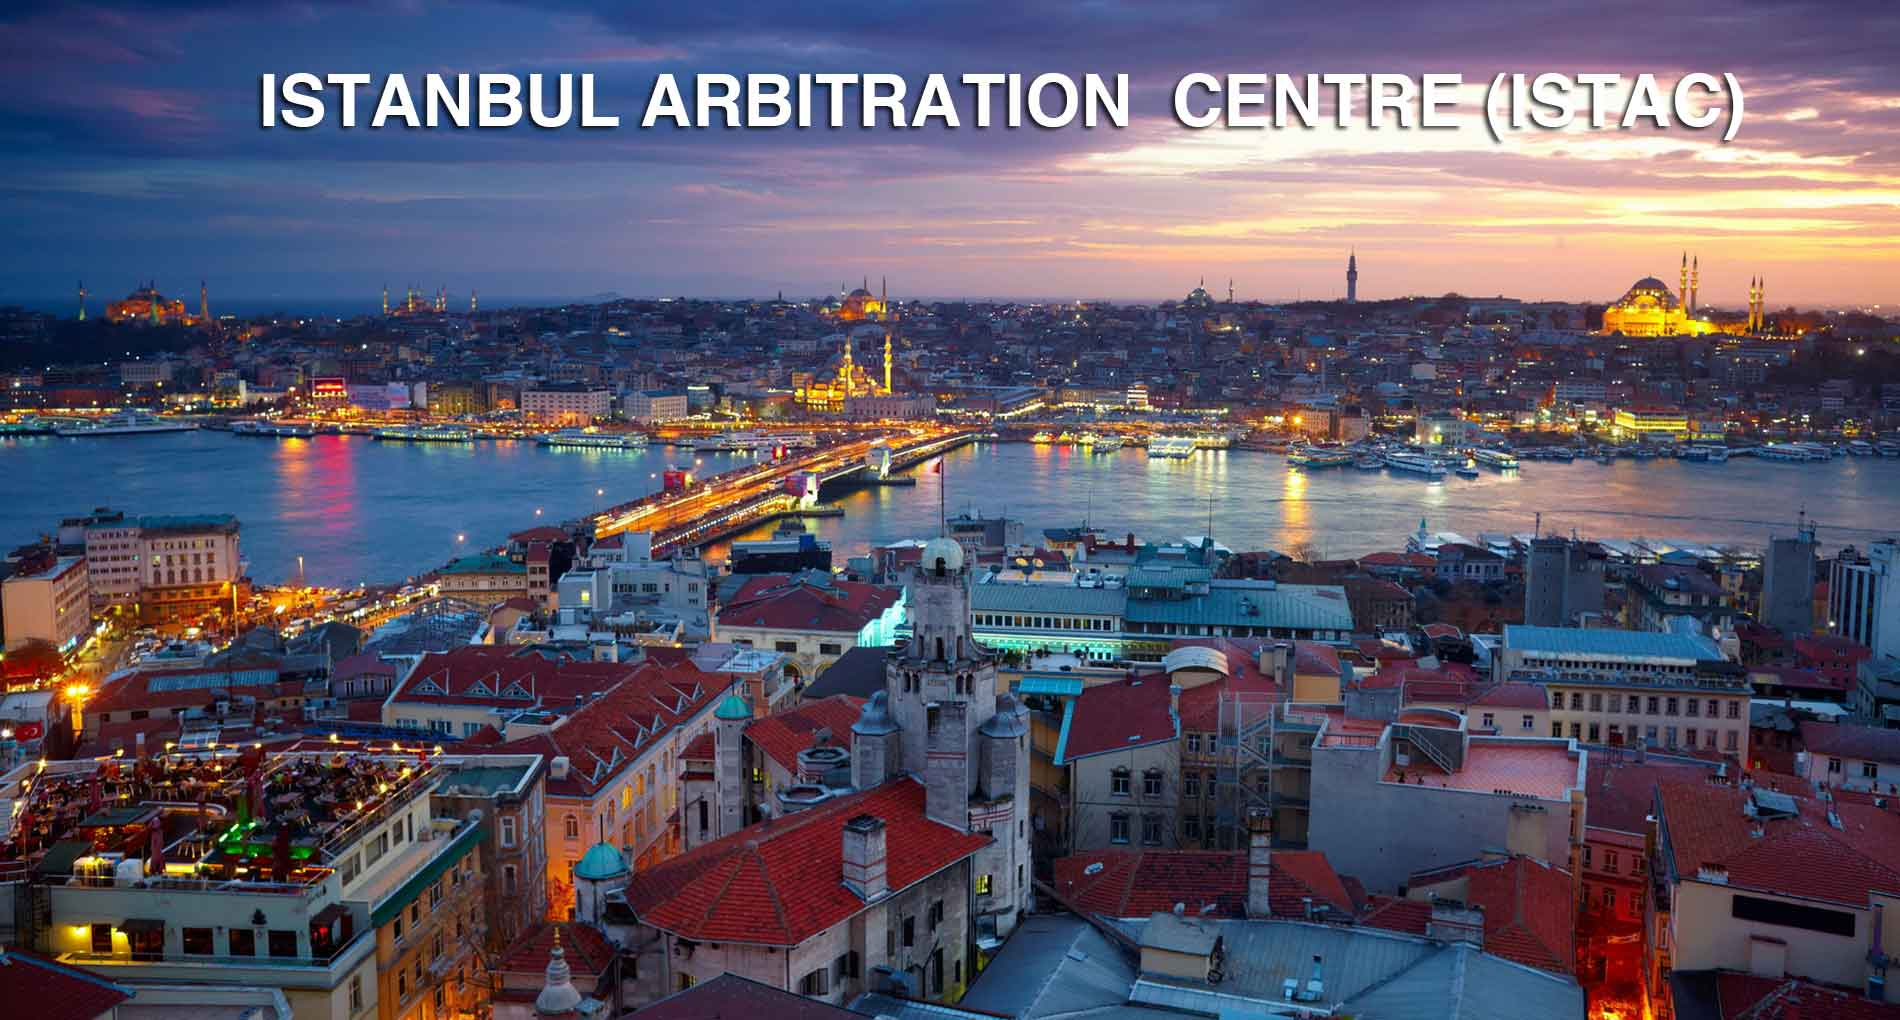 istanbul arbitration centre istac